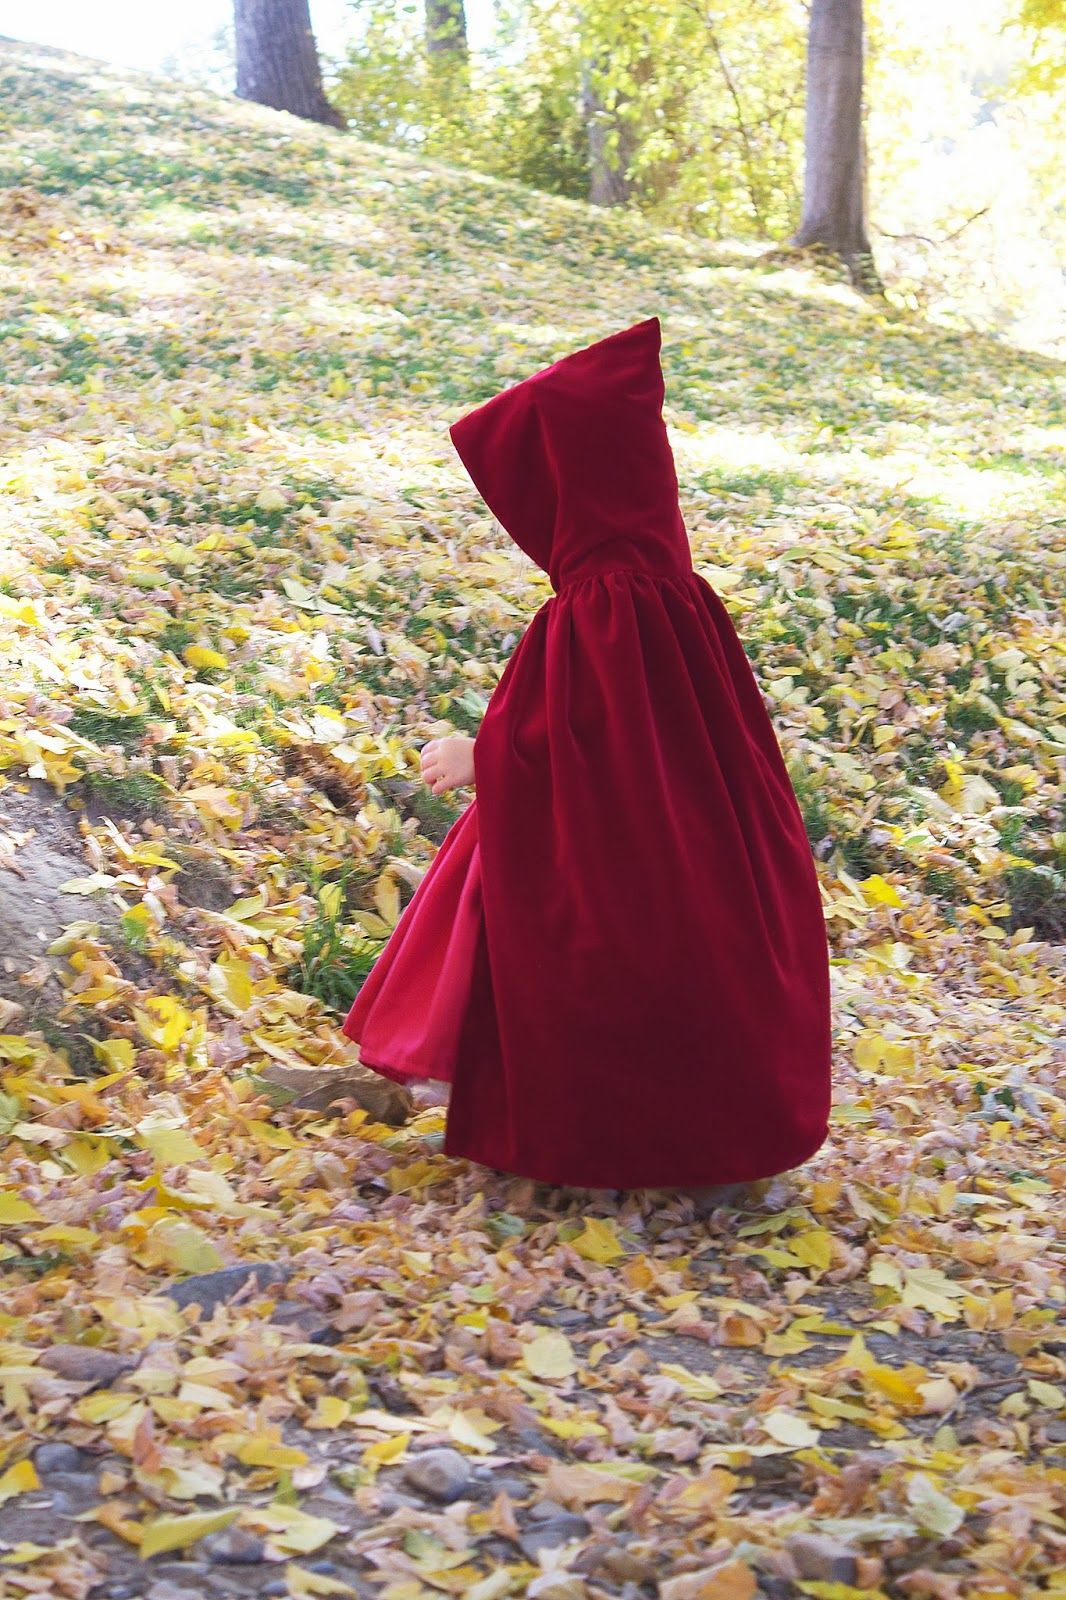 Diy little red riding hood costumecloak 2t 4t cloaks red riding diy little red riding hood costumecloak 2t 4t solutioingenieria Choice Image